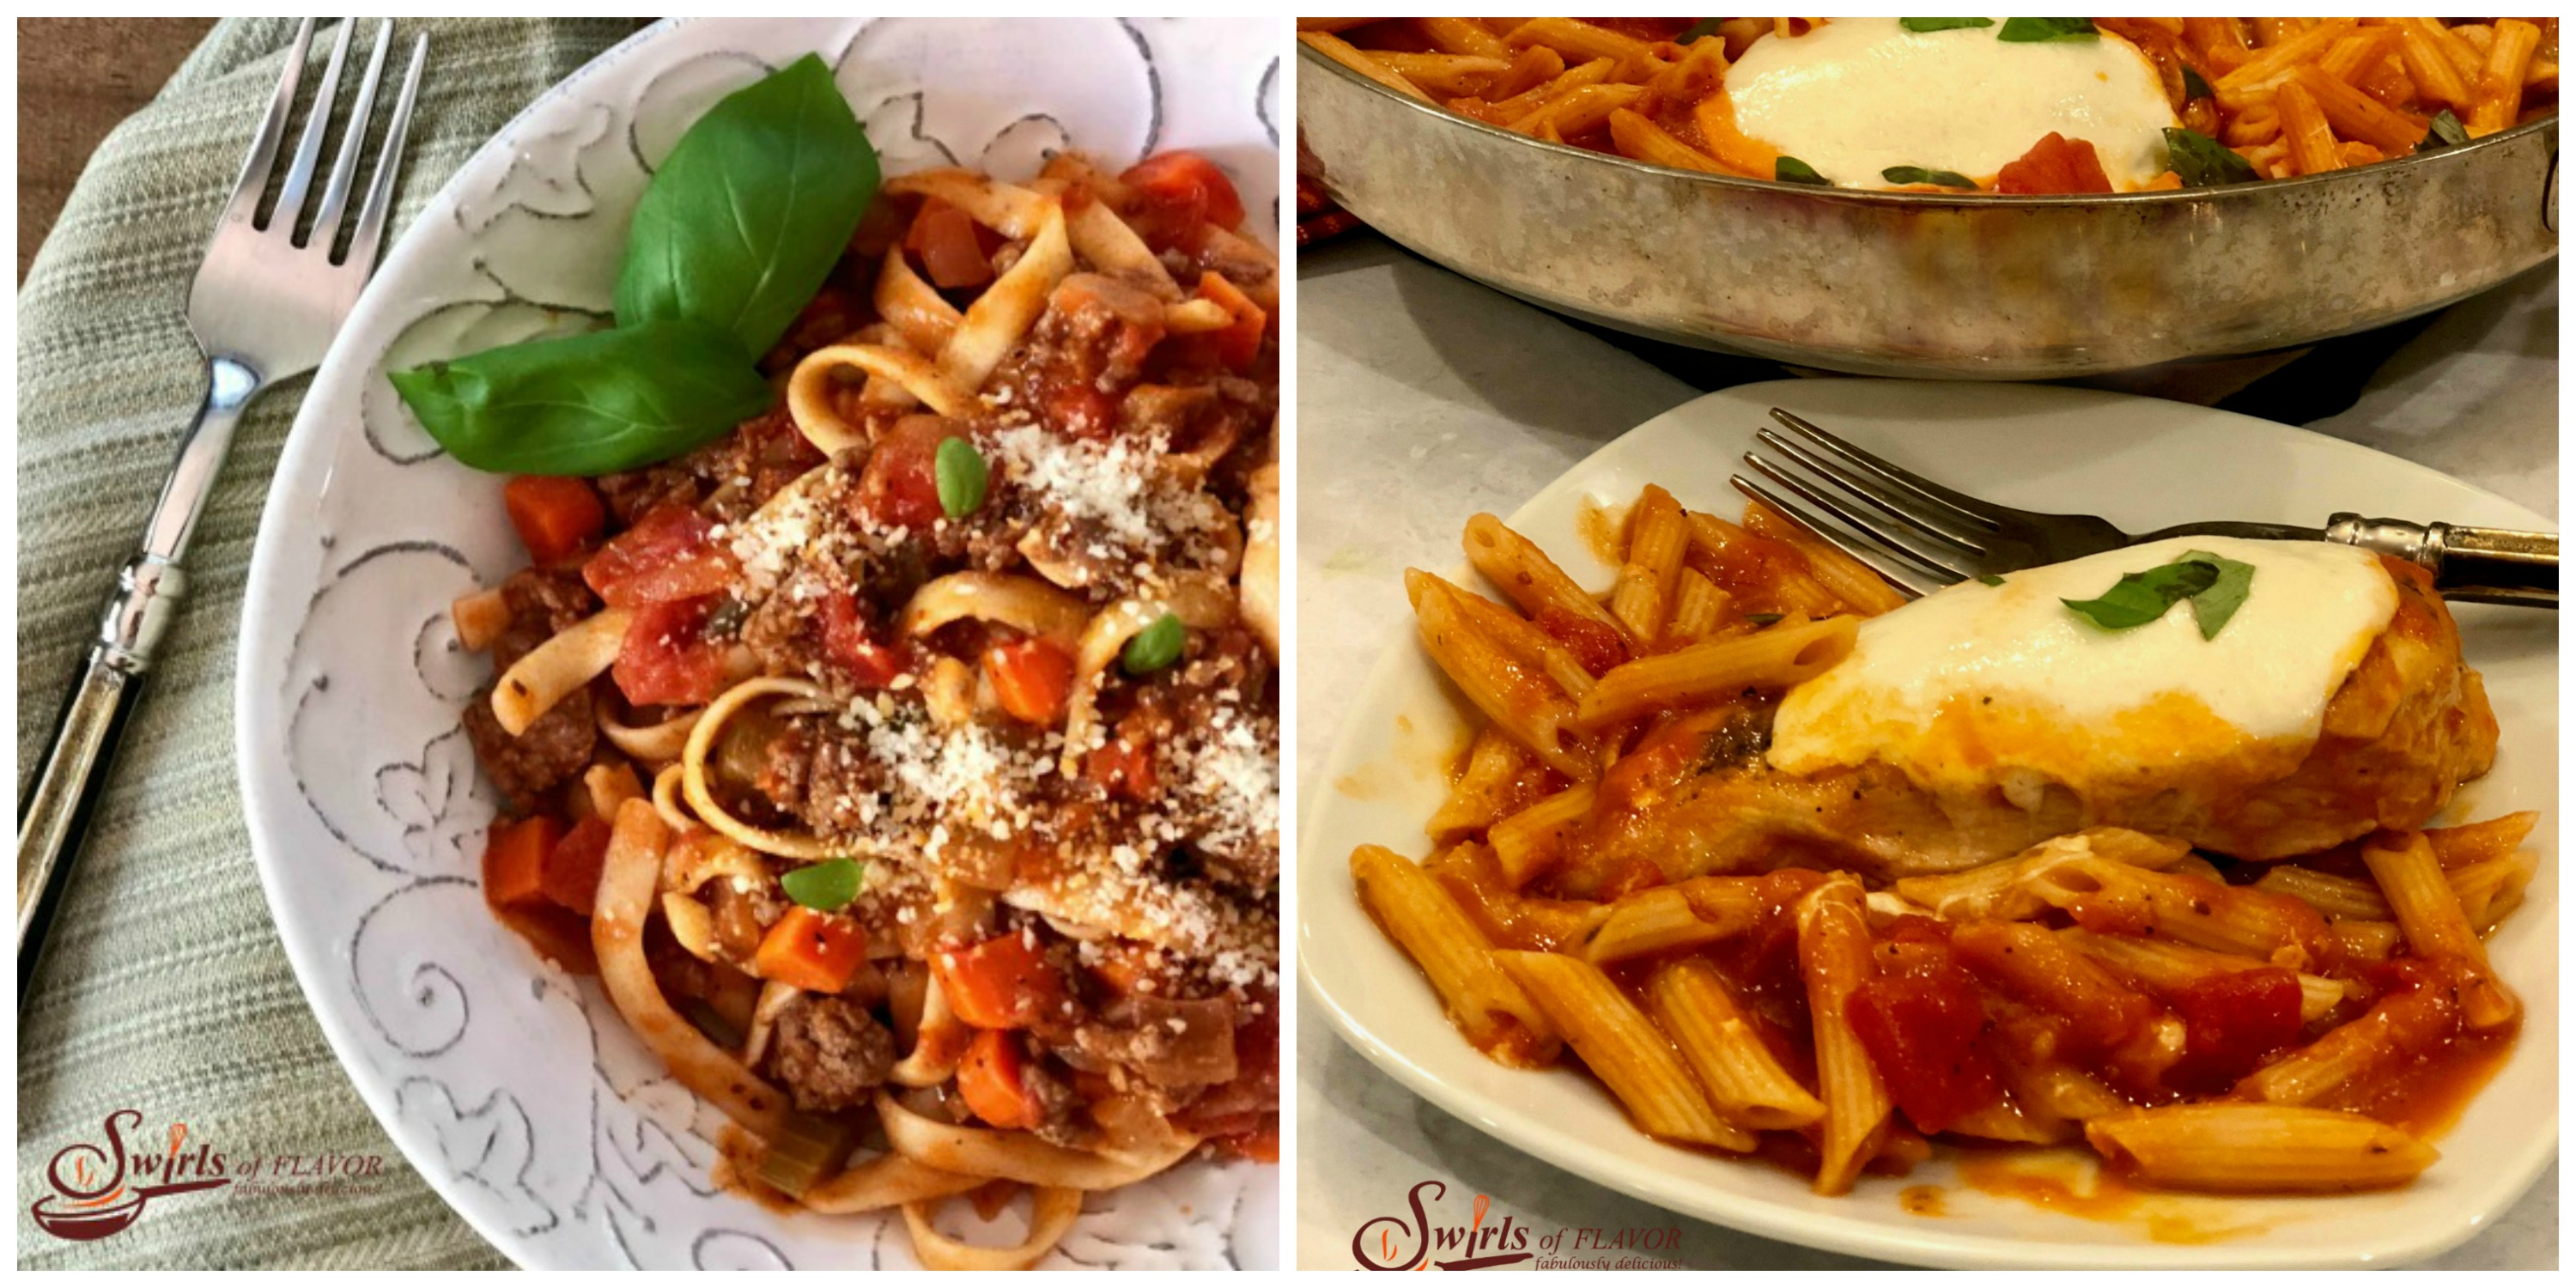 Fettuccine Bolognese and Chicken Parmesan and Pasta